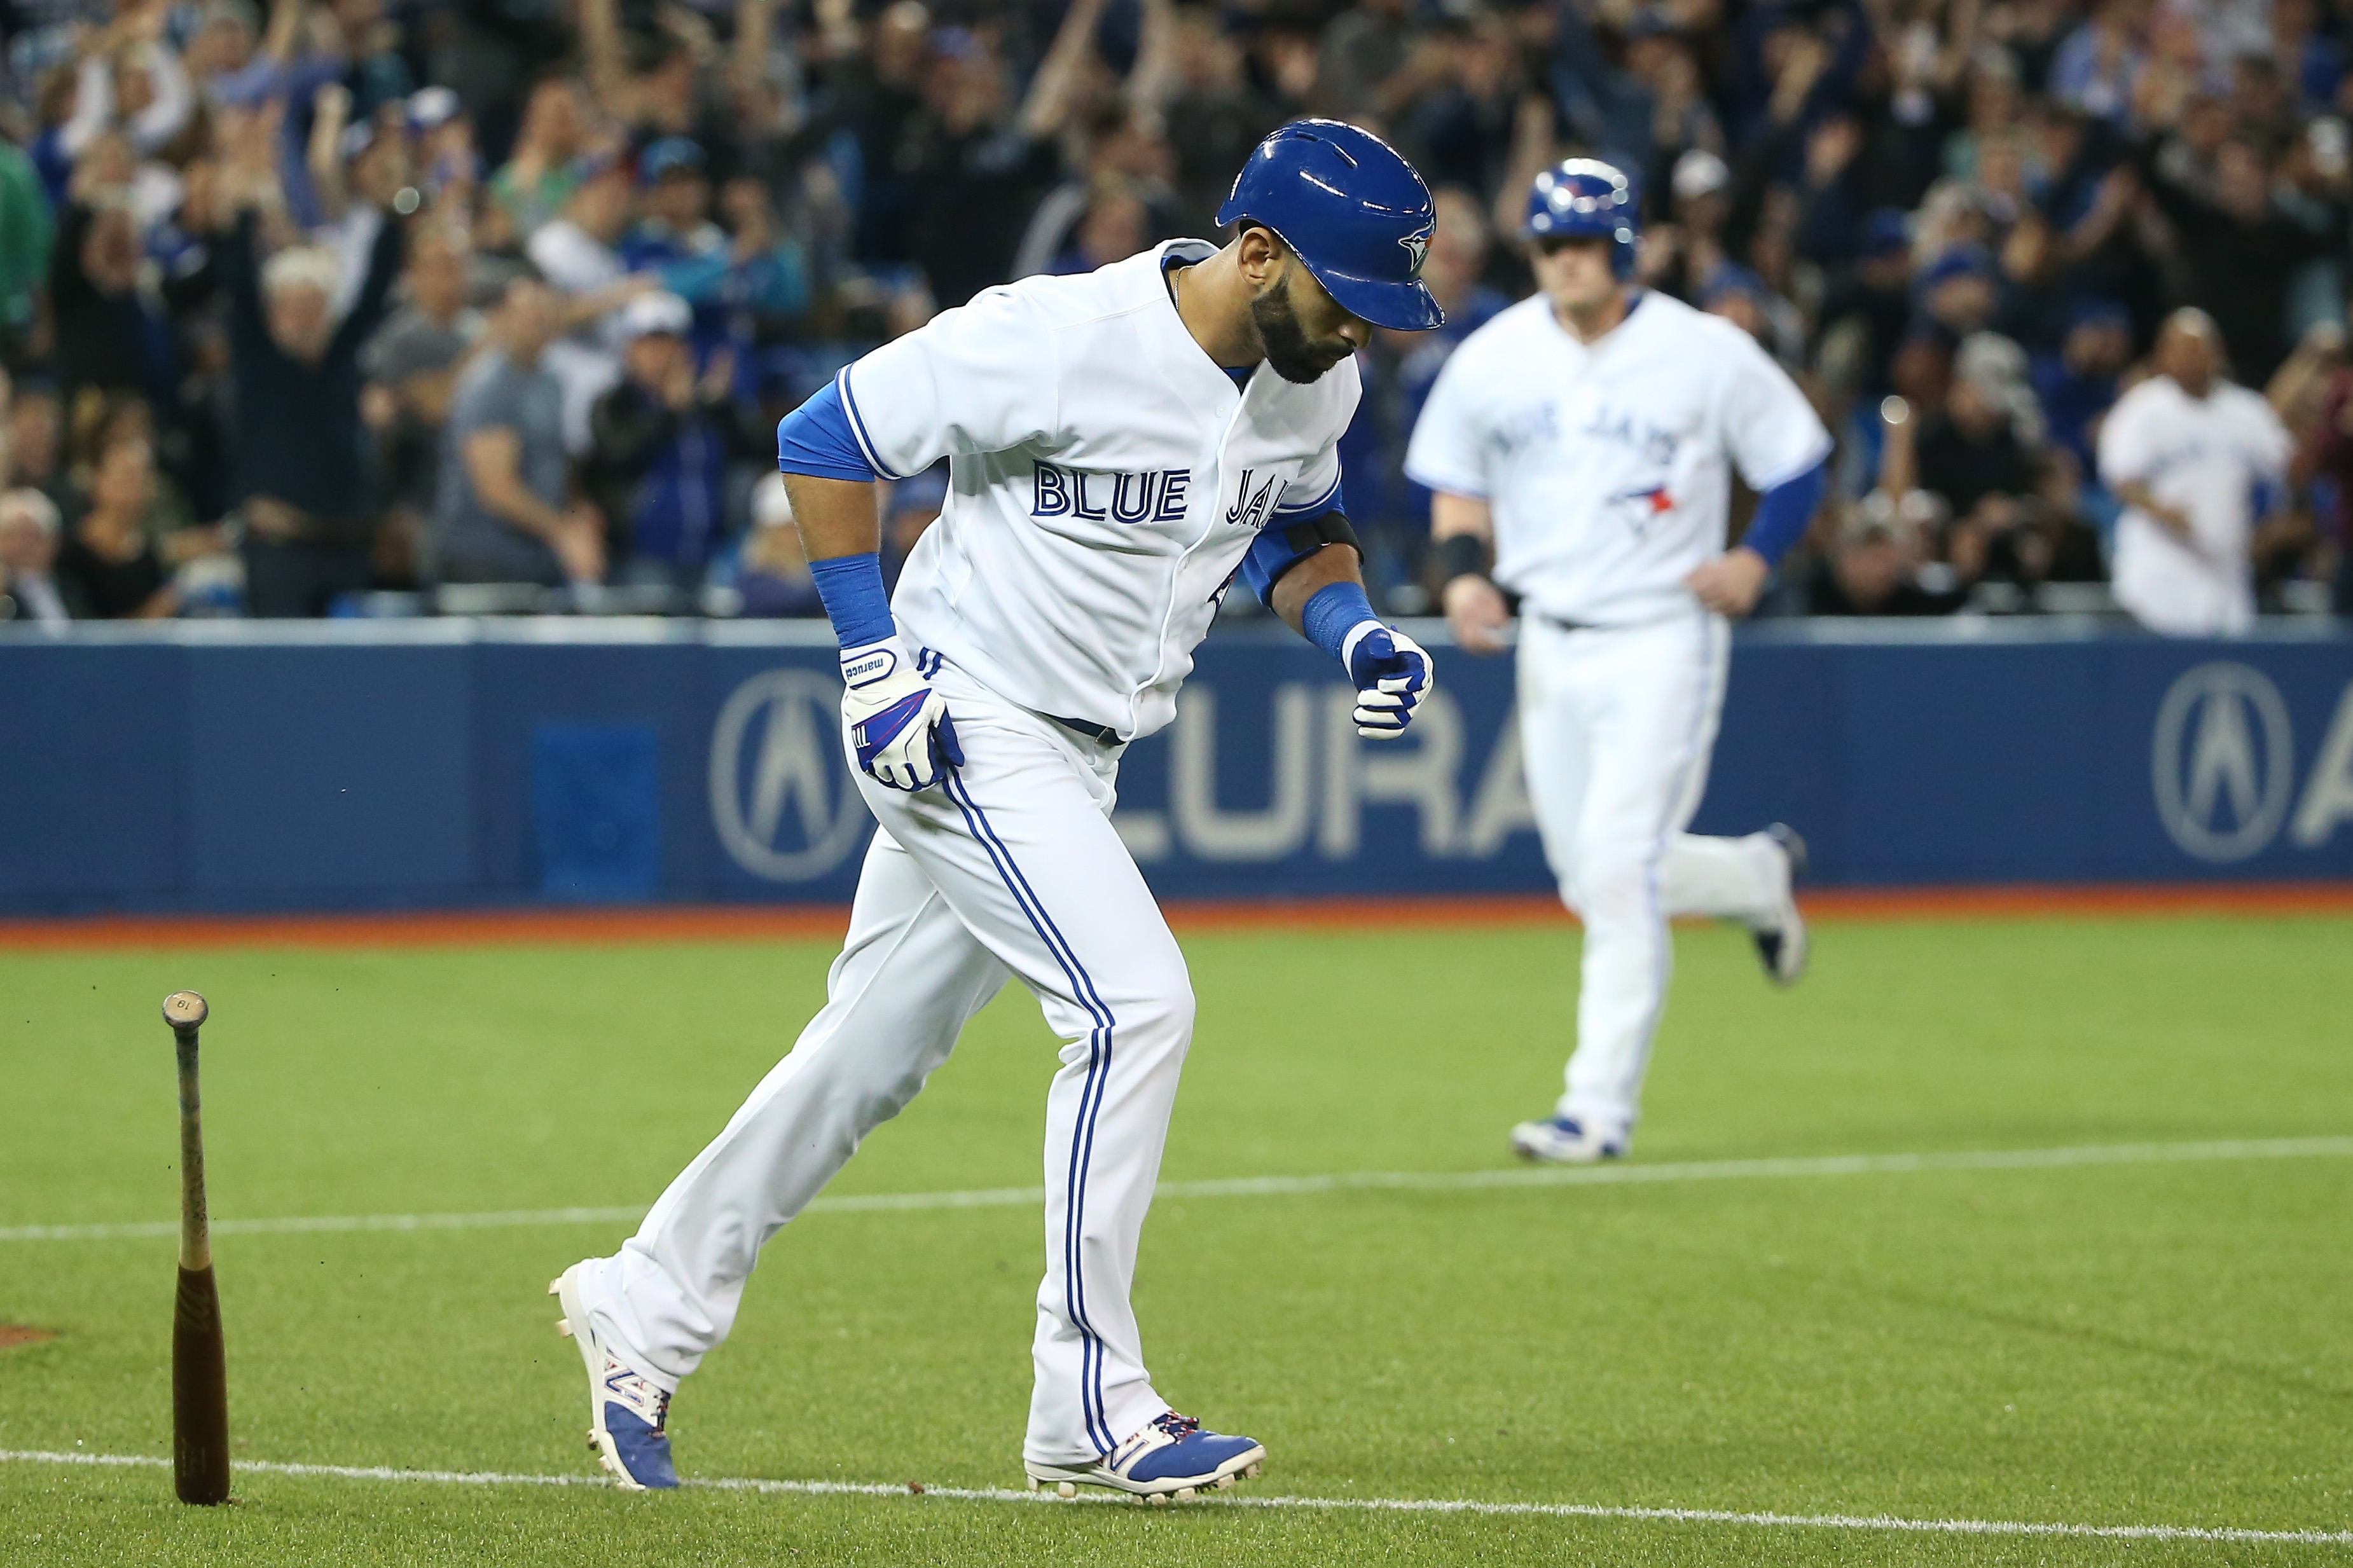 Toronto's Jose Bautista angered the Baltimore Orioles with his home run trot in their game last Tuesday at Rogers Center.